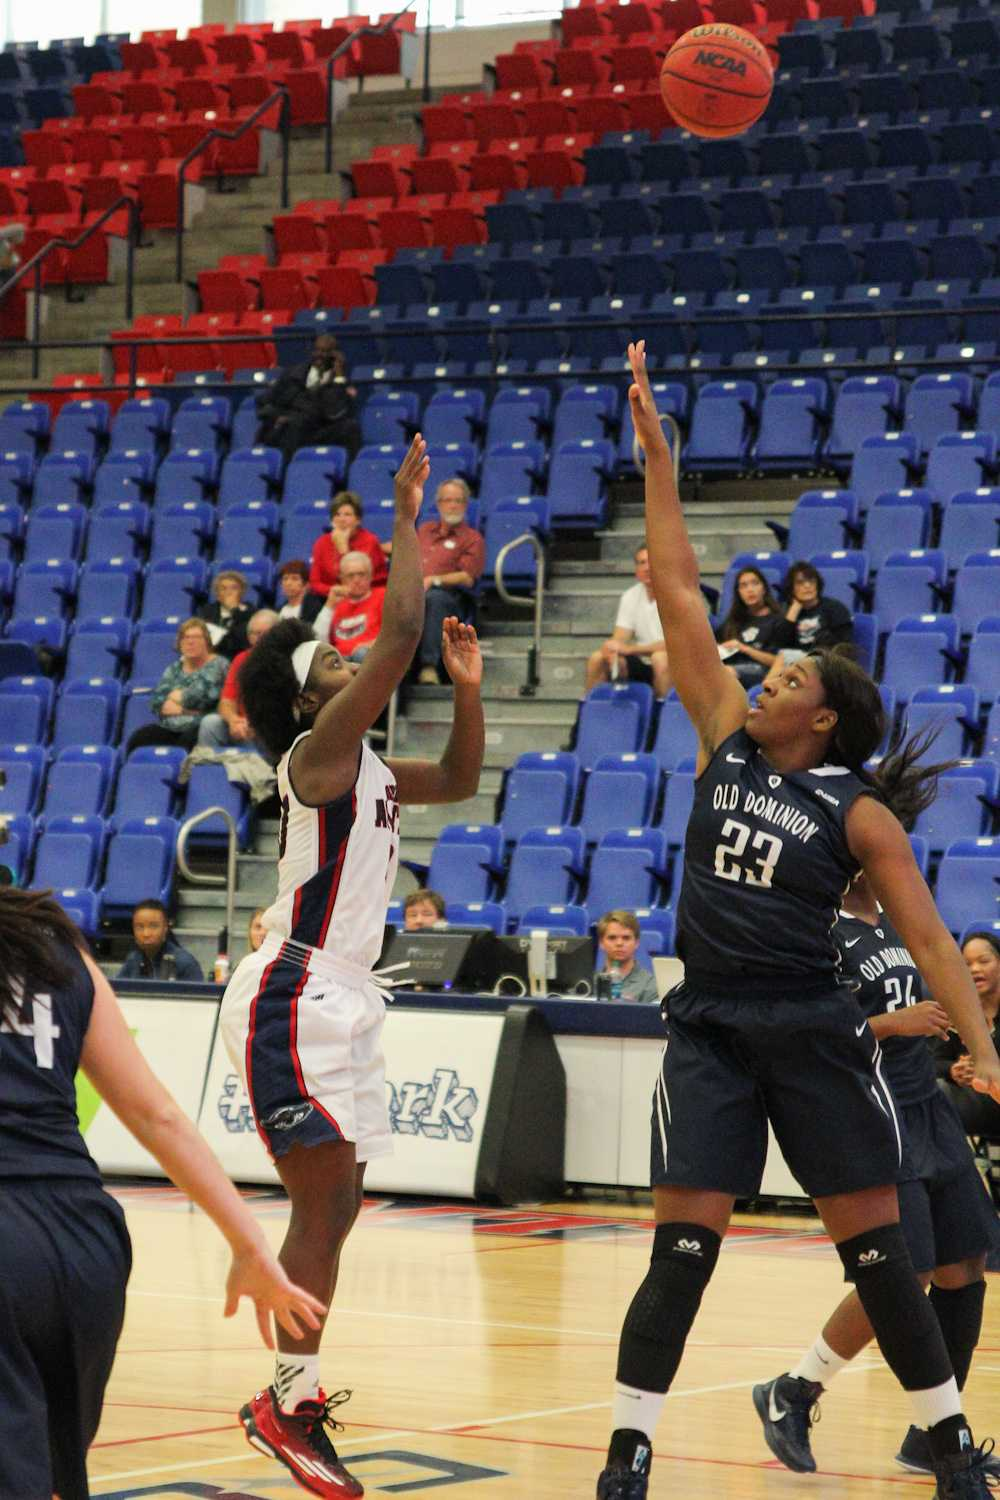 Morgan Robinson (10)  of the FAU Owls attempts a jump shot over Ije Ajemba (23) in the first half. Robinson shot 2-for-10 on the night.